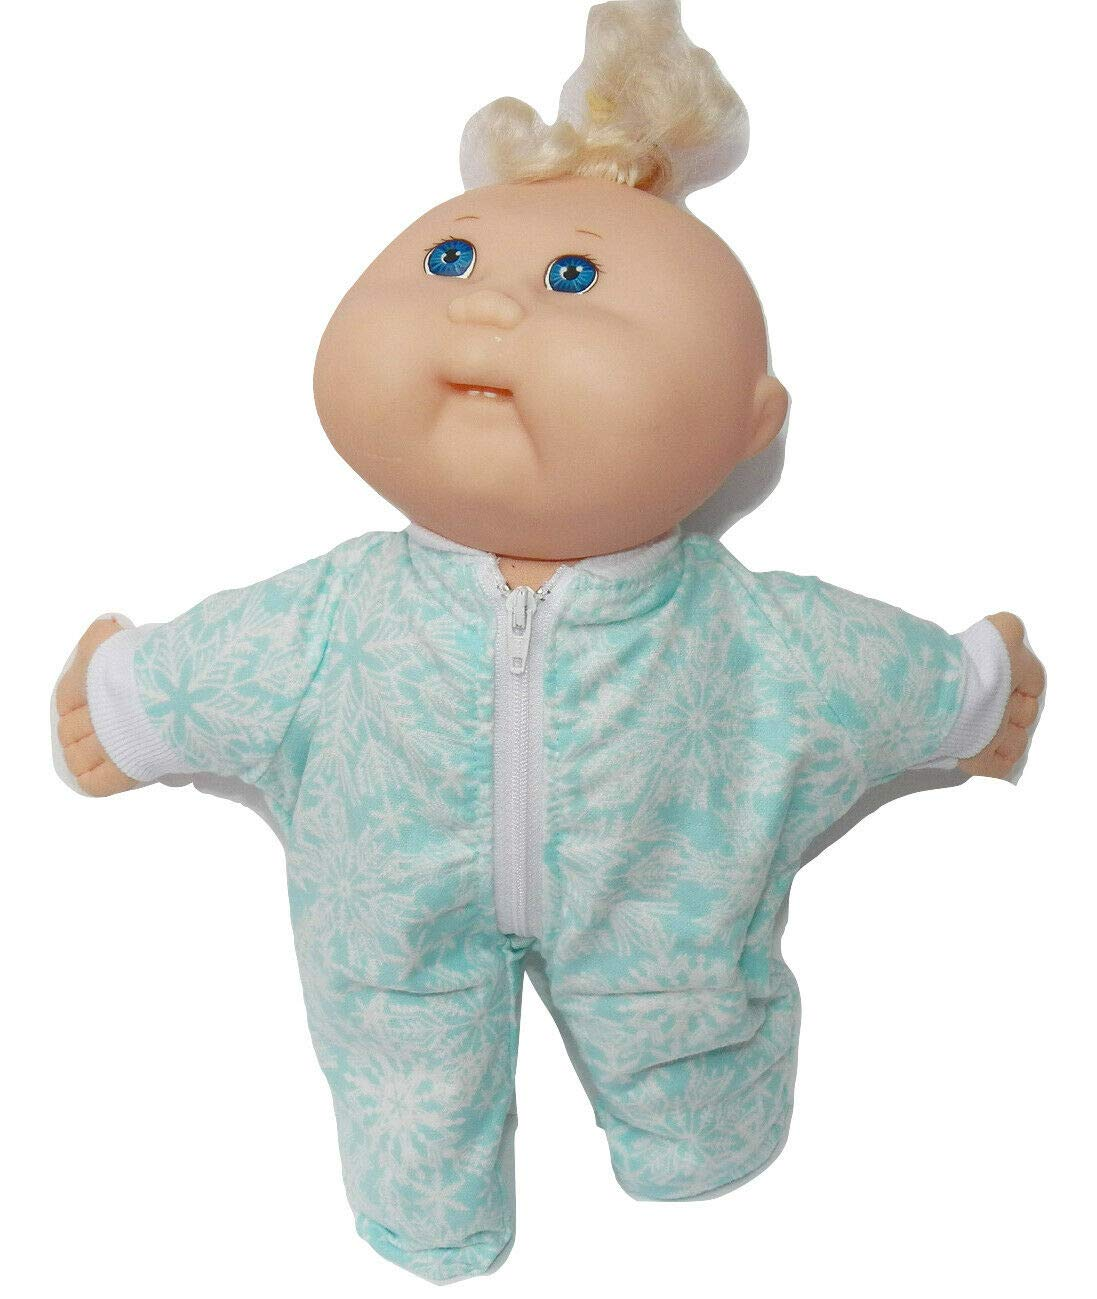 No Doll! 12 inch Boy Size Cabbage Patch Doll Clothes Green Snowflake Flannel Pajamas